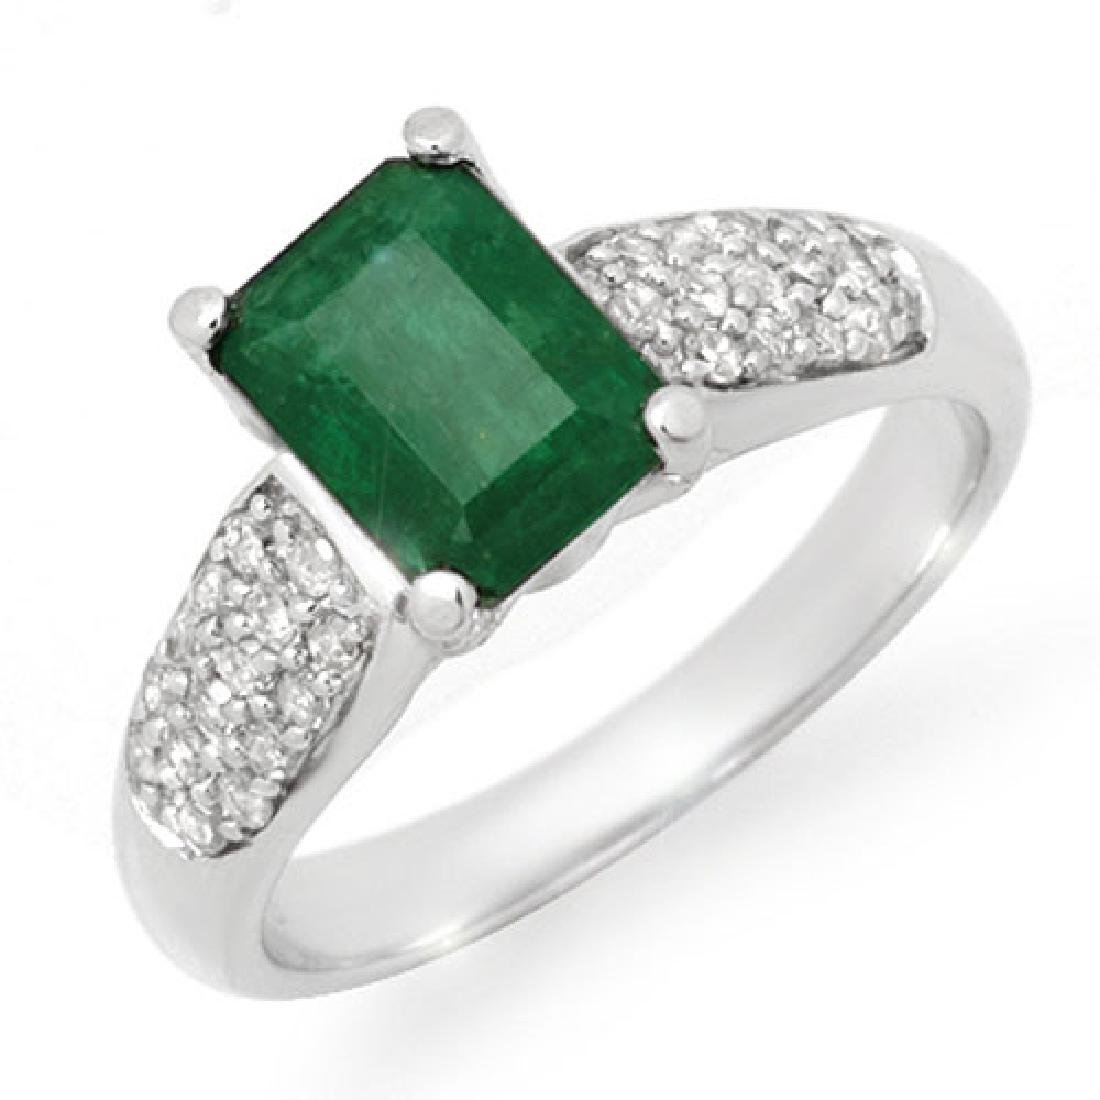 1.76 CTW Emerald & Diamond Ring 10K White Gold